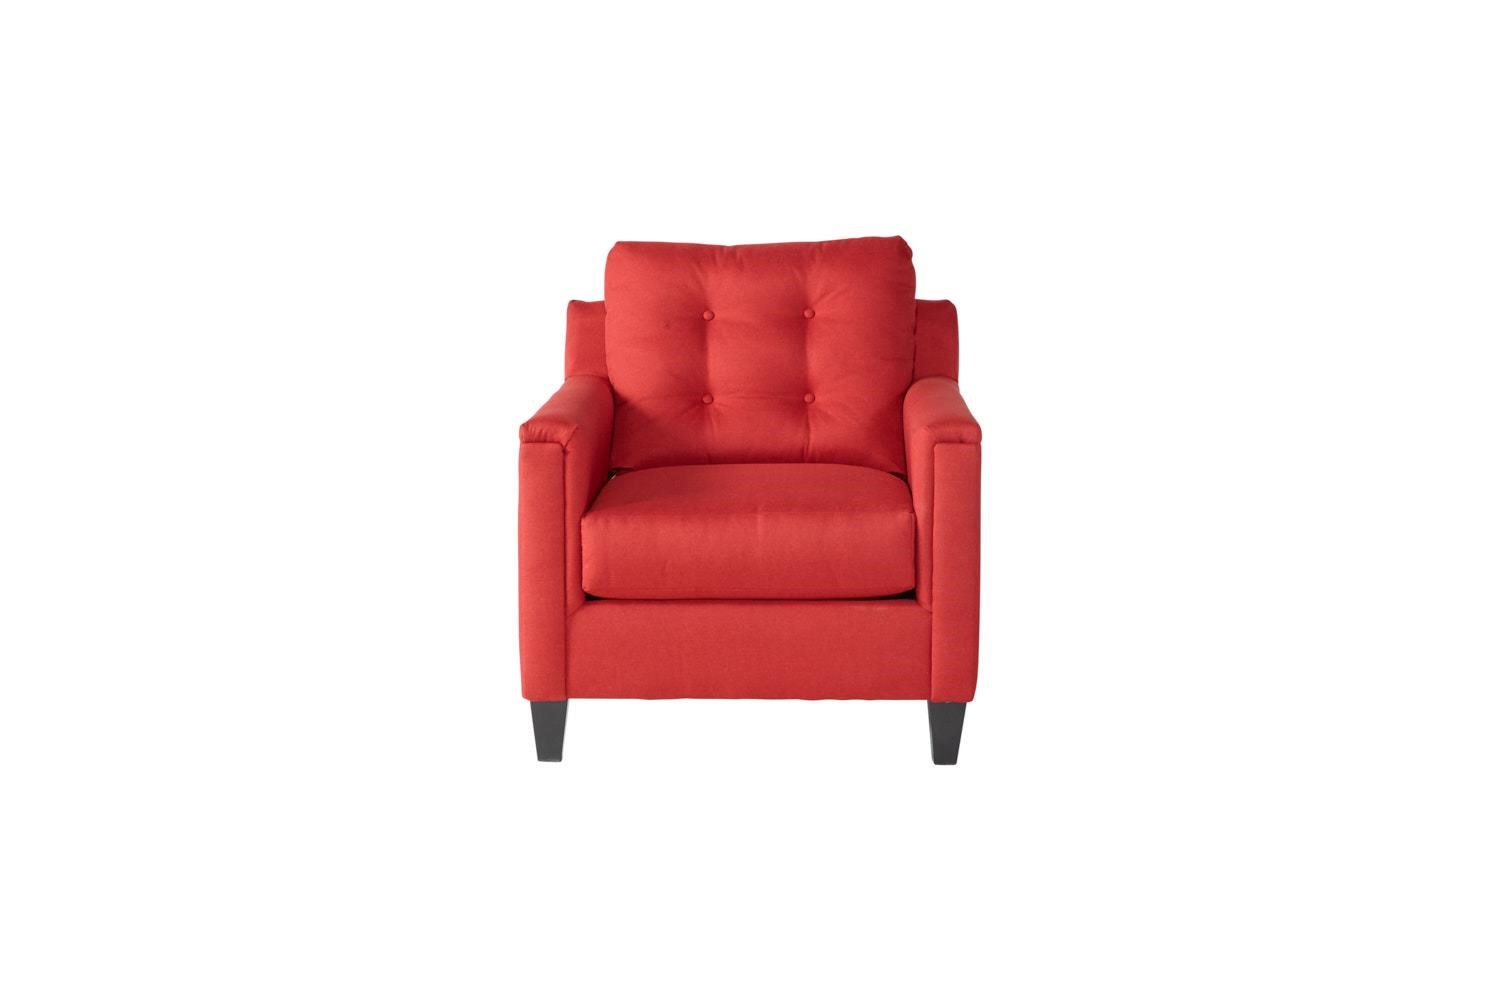 Serta Upholstery by Hughes Furniture 6800Jitt Red Chair - Item Number: 6800Red